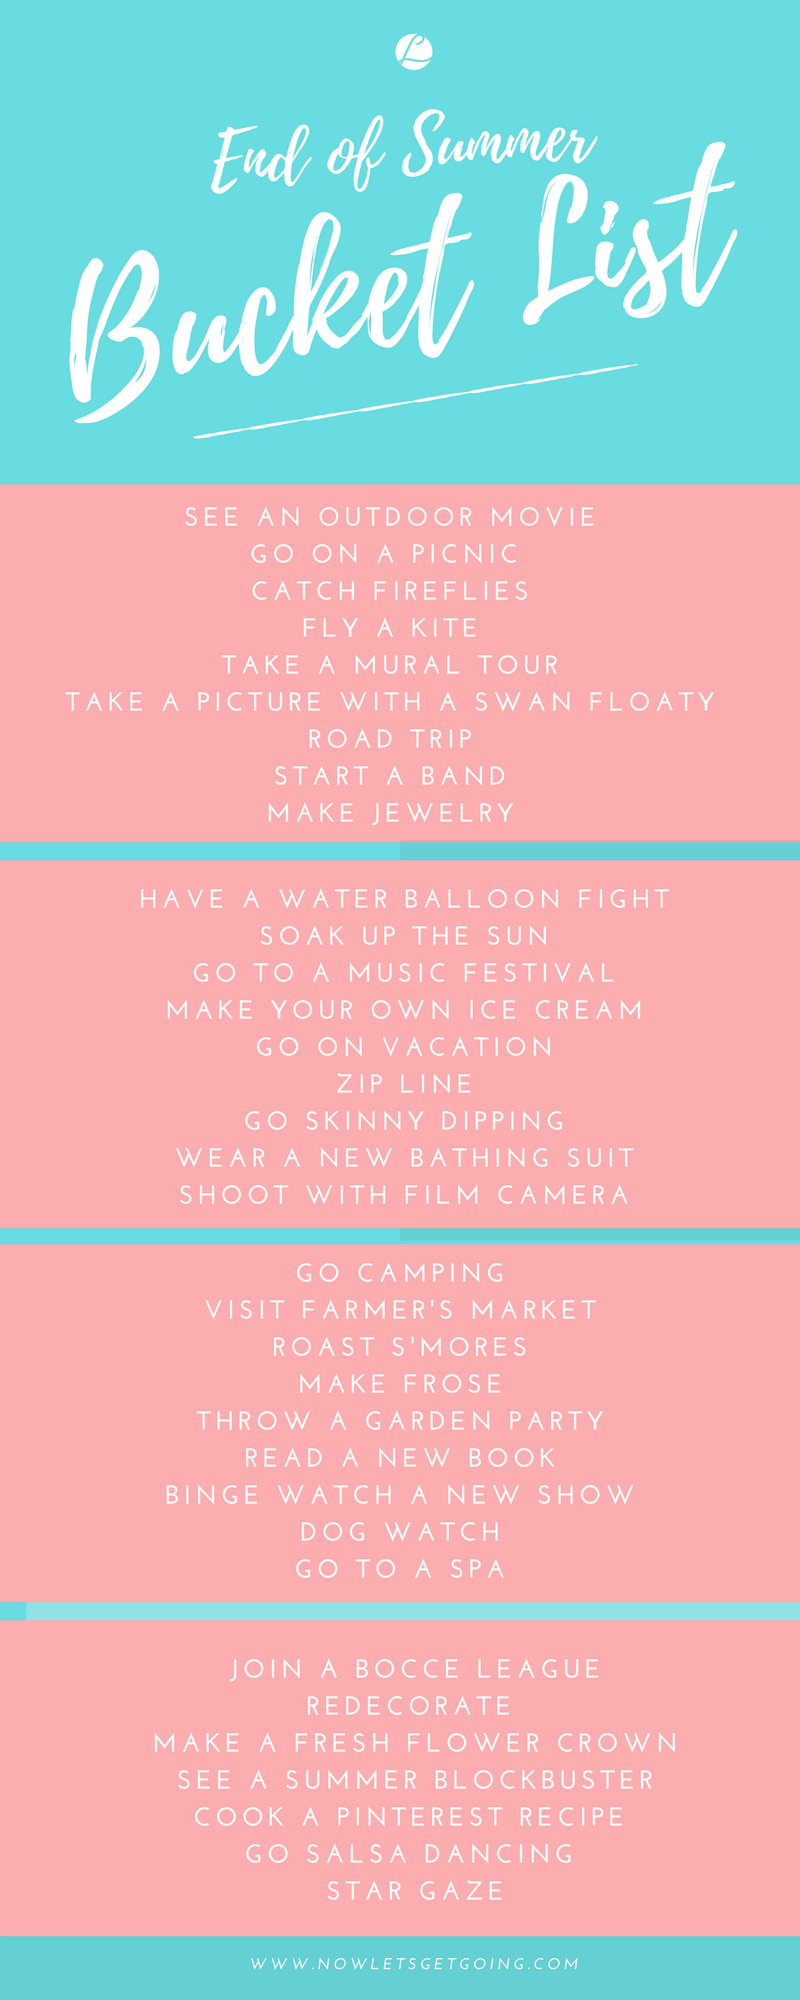 The Ultimate End of Summer Bucket List